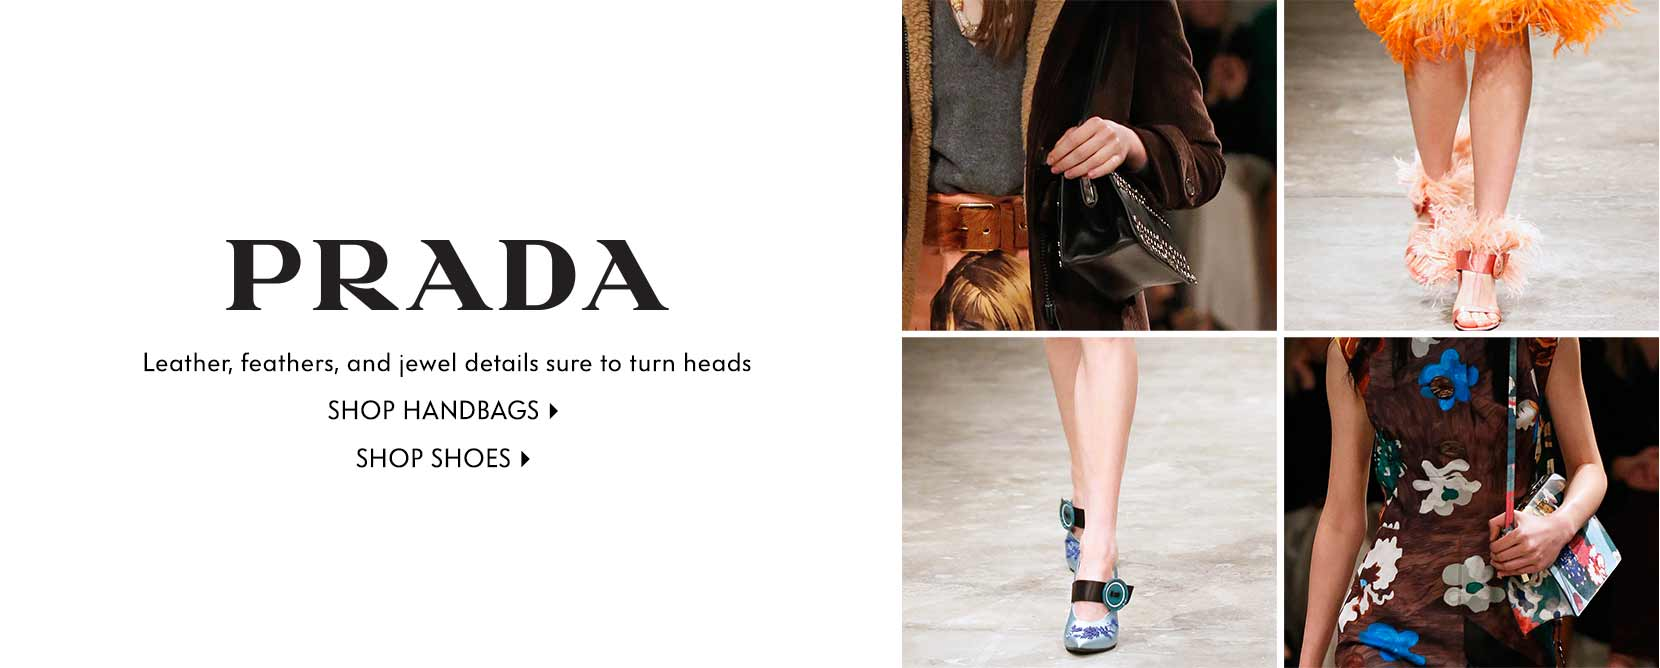 PRADA Leather, feathers, and jewel details sure to turn heads Shop handbags Shop shoes